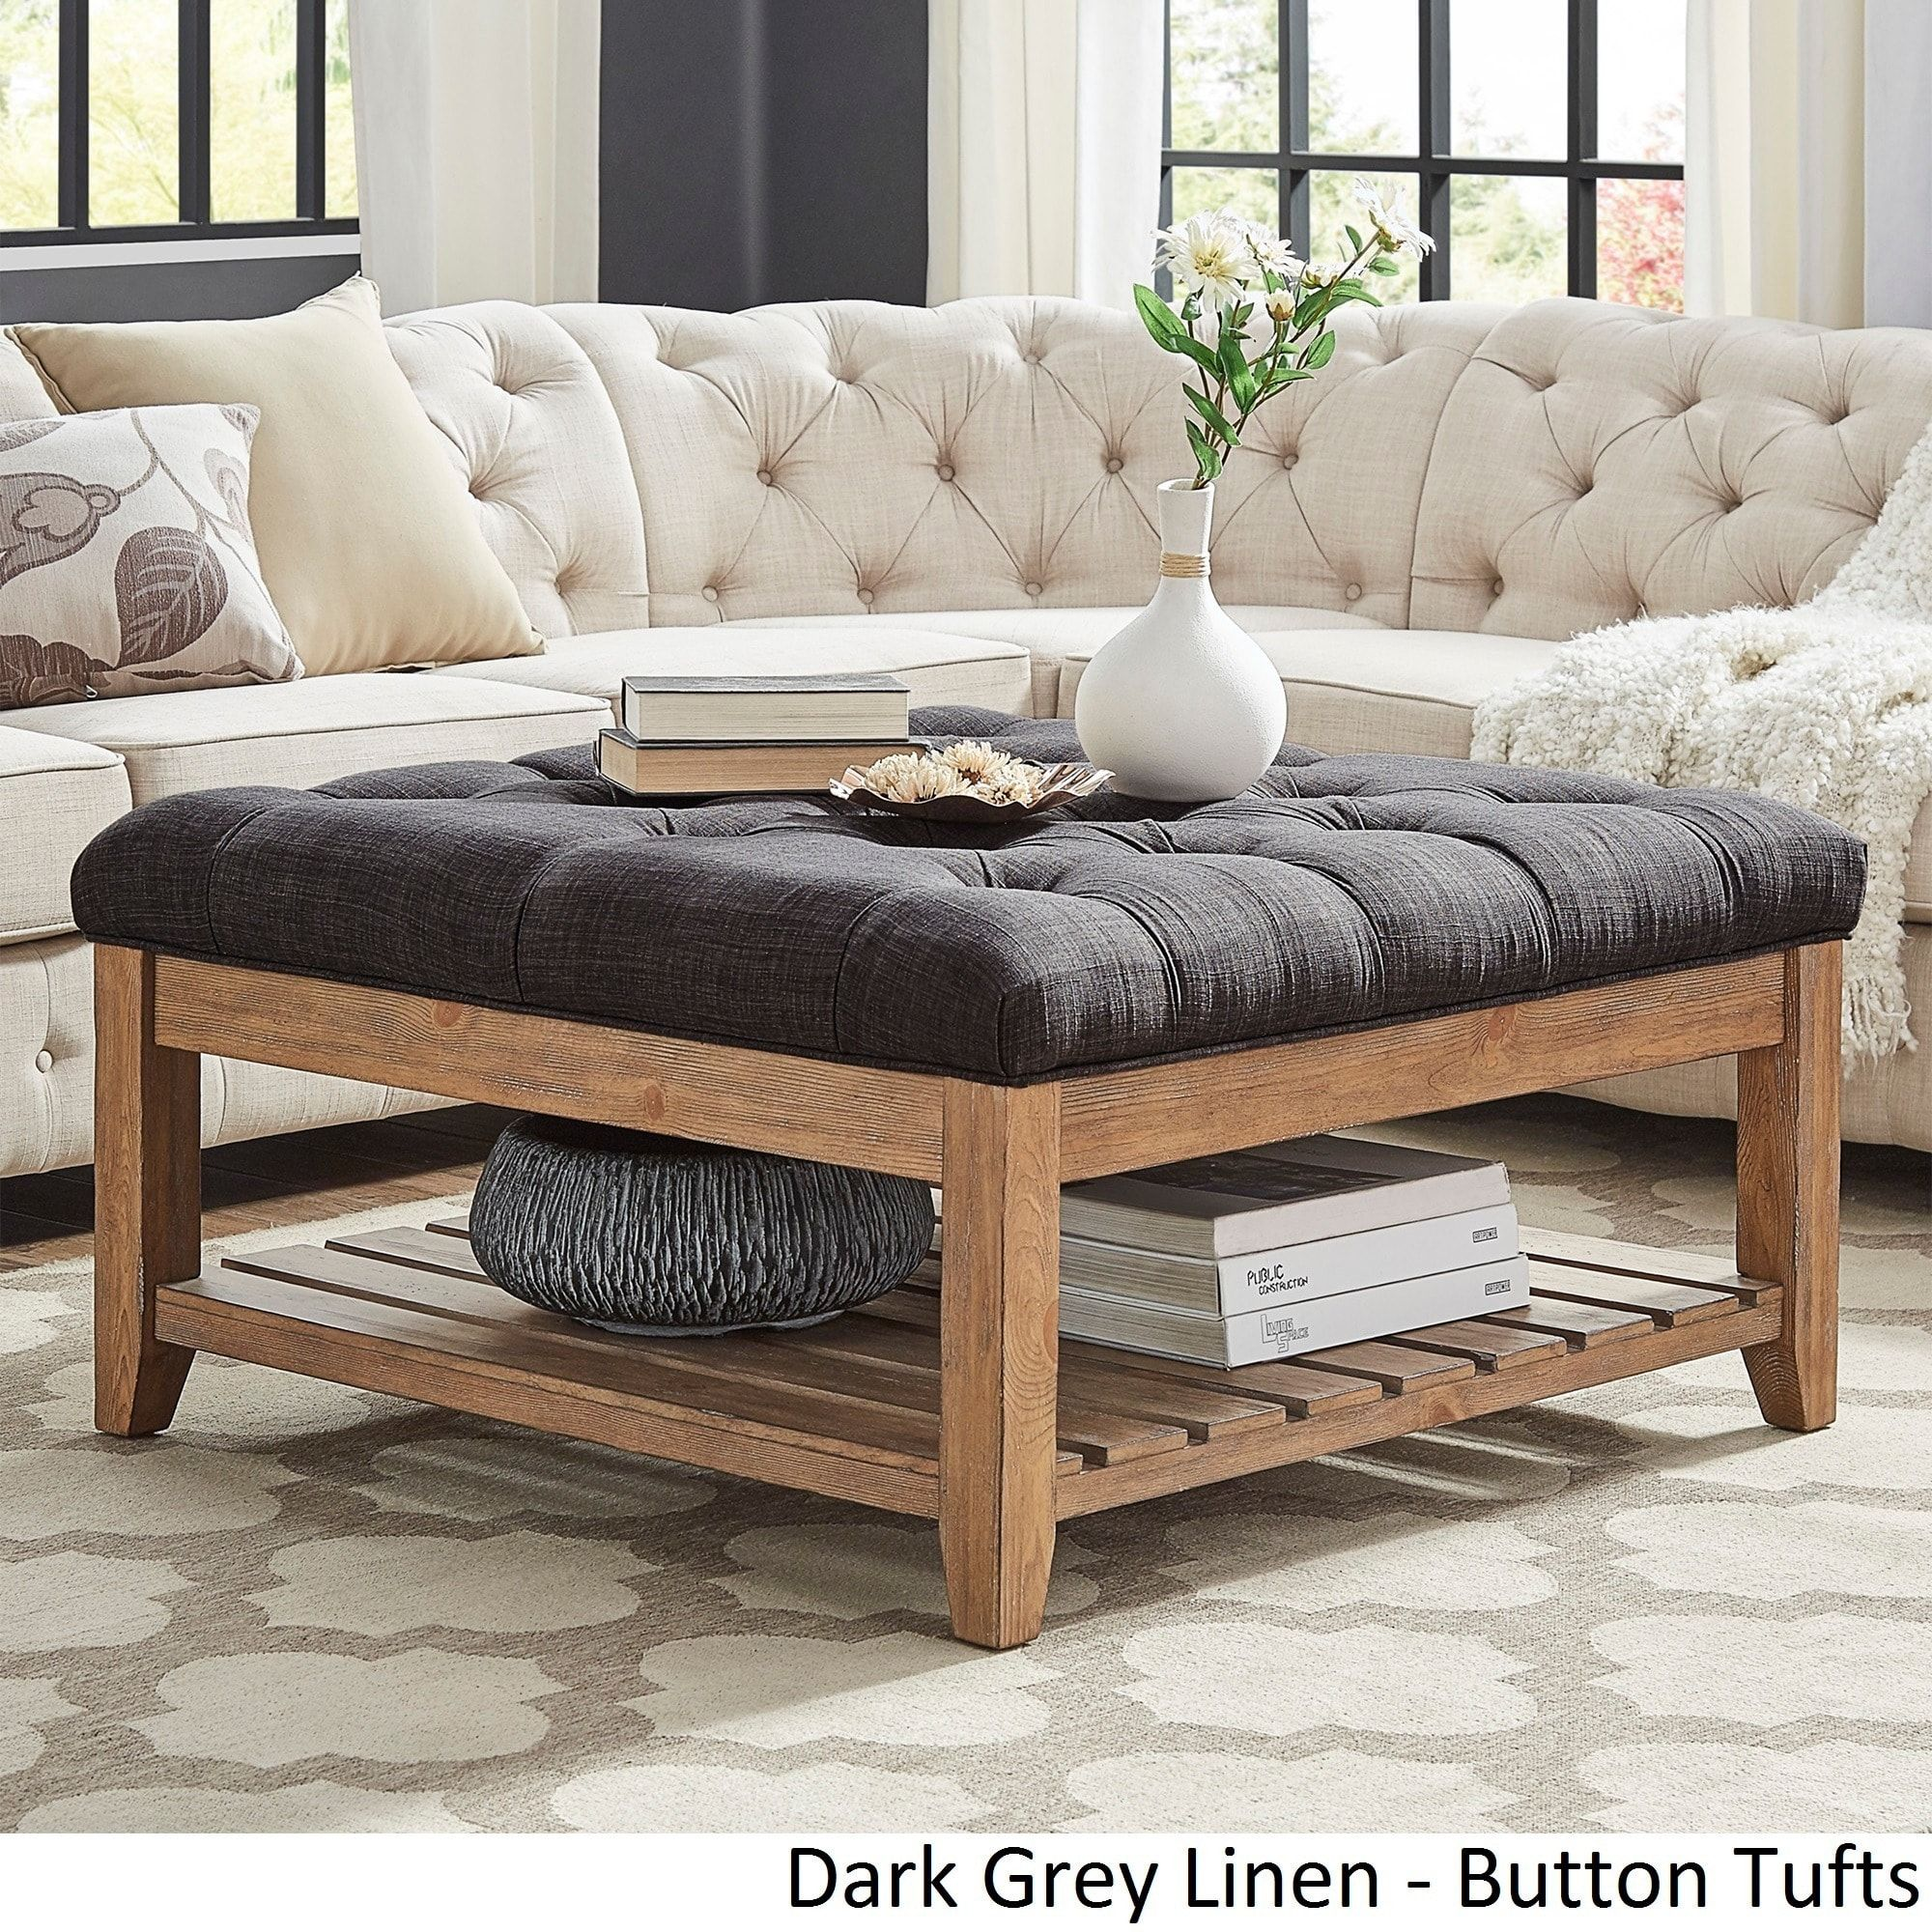 Overstock Com Online Shopping Bedding Furniture Electronics Jewelry Clothing More Storage Ottoman Coffee Table Coffee Table Ottoman Coffee Table [ 2000 x 2000 Pixel ]